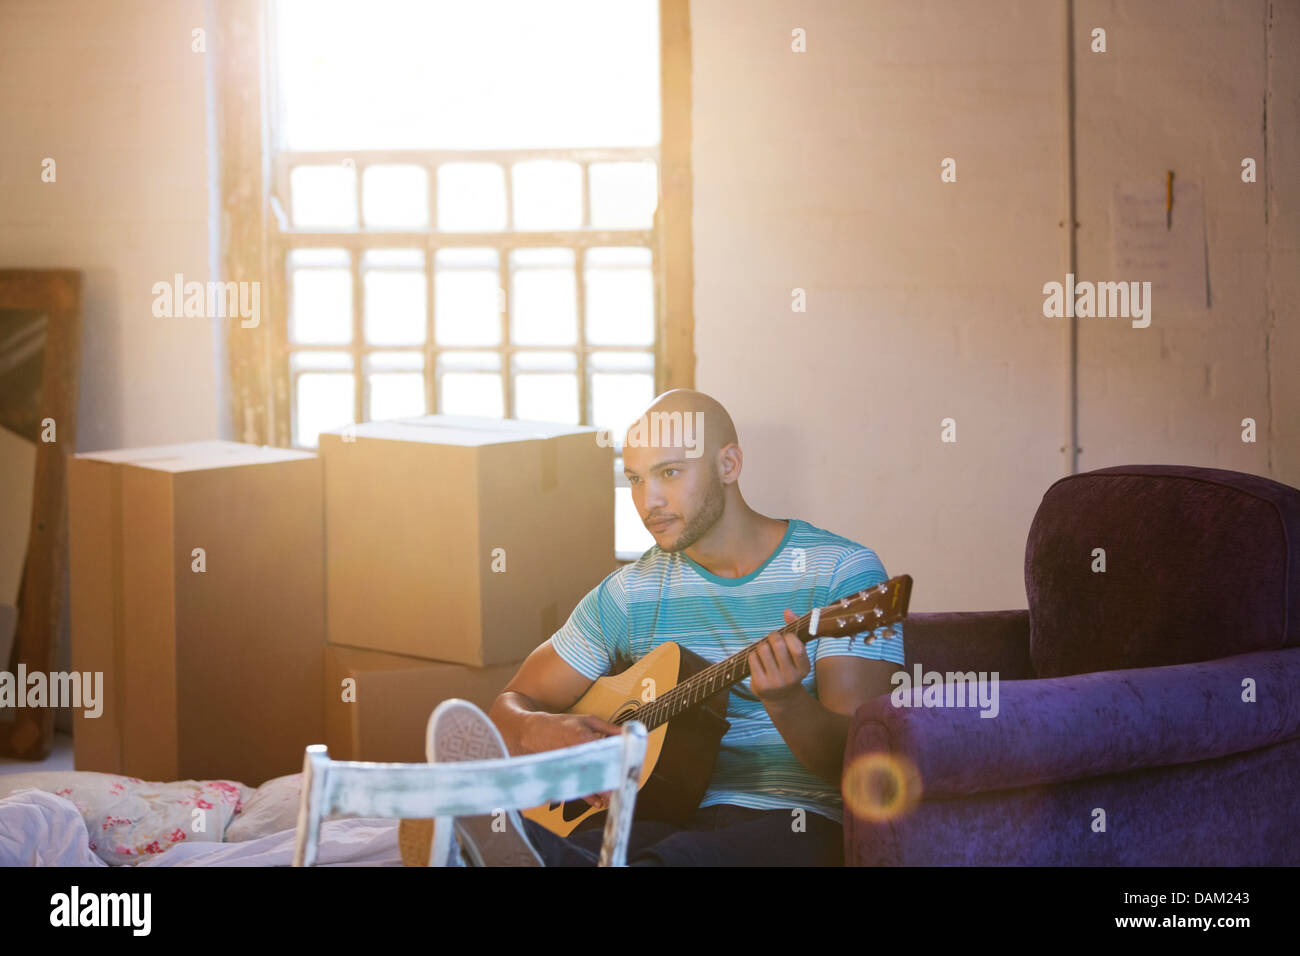 Man playing guitar in new home - Stock Image